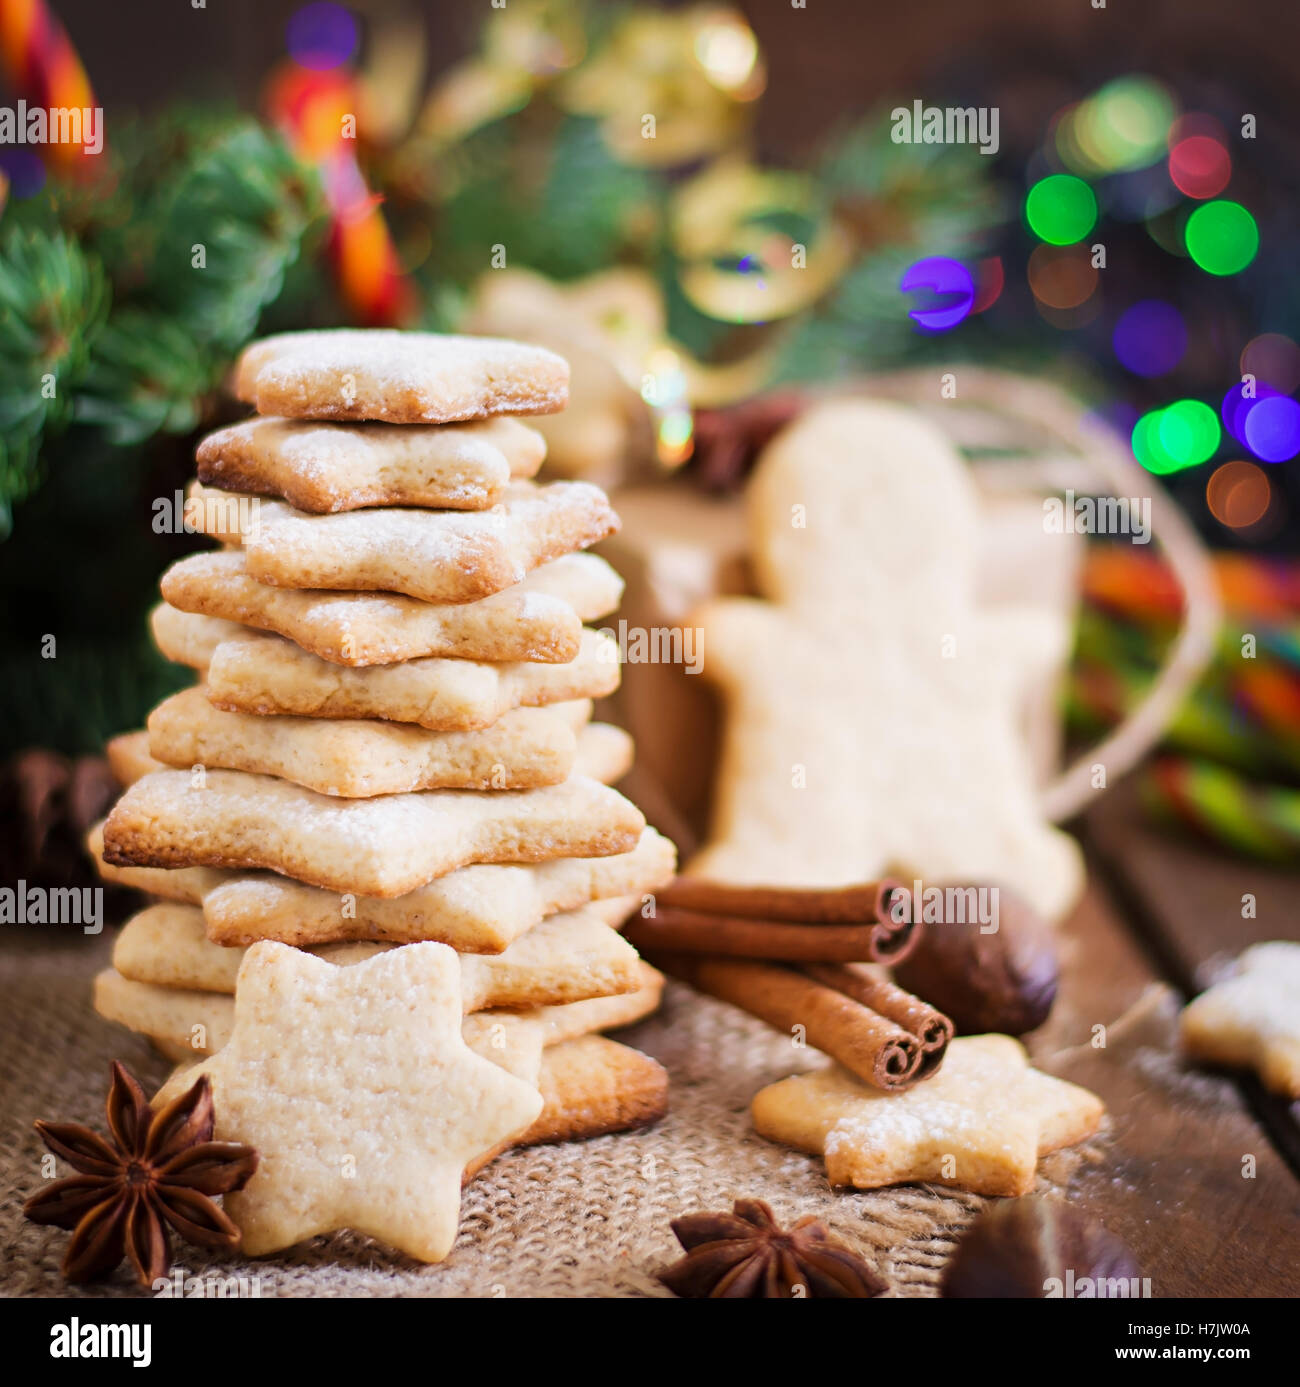 Christmas cookies and tinsel on a dark wooden background - Stock Image